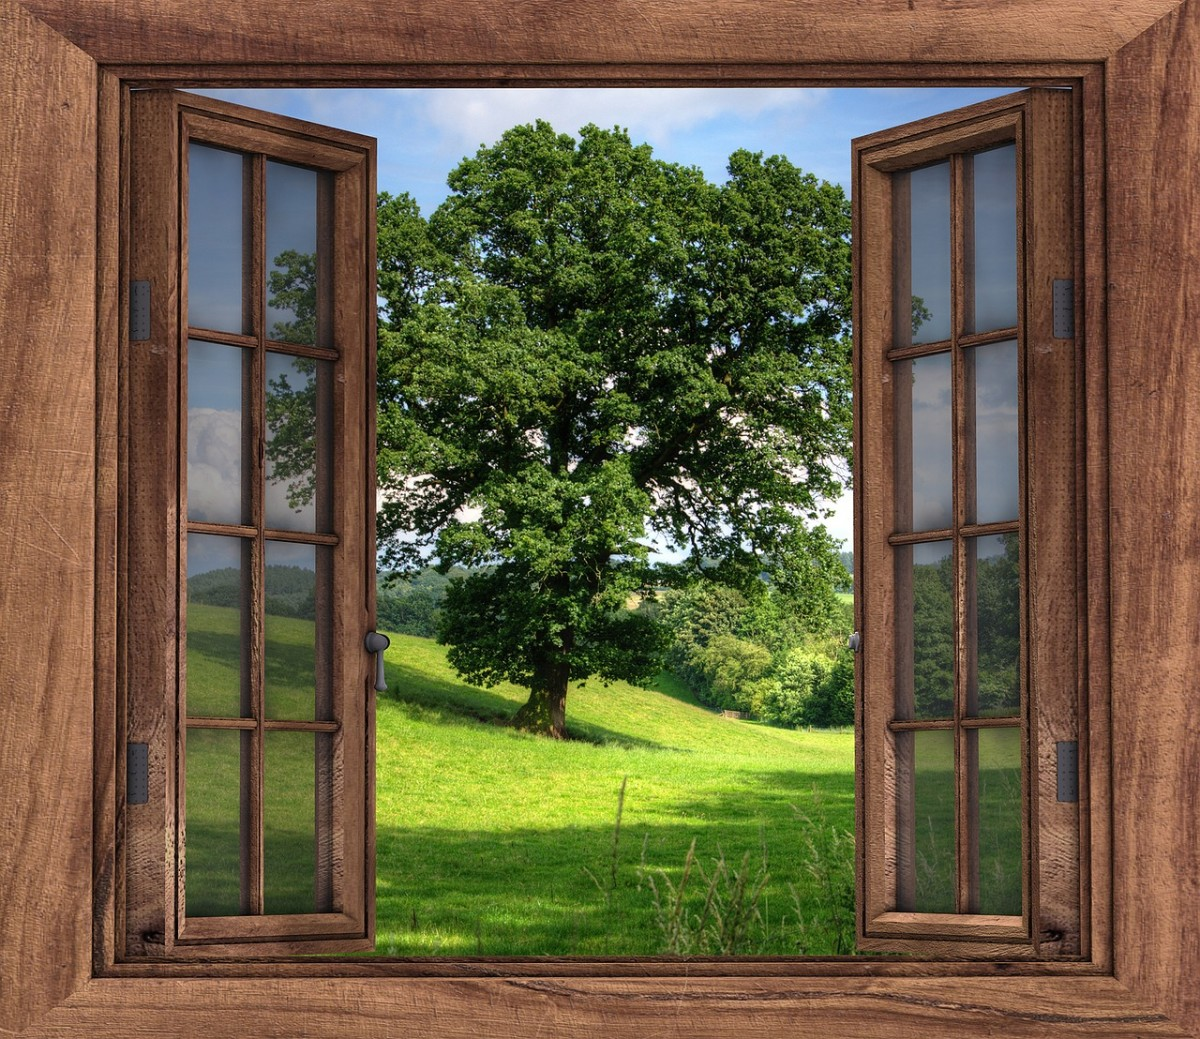 Opening a window has health benefits